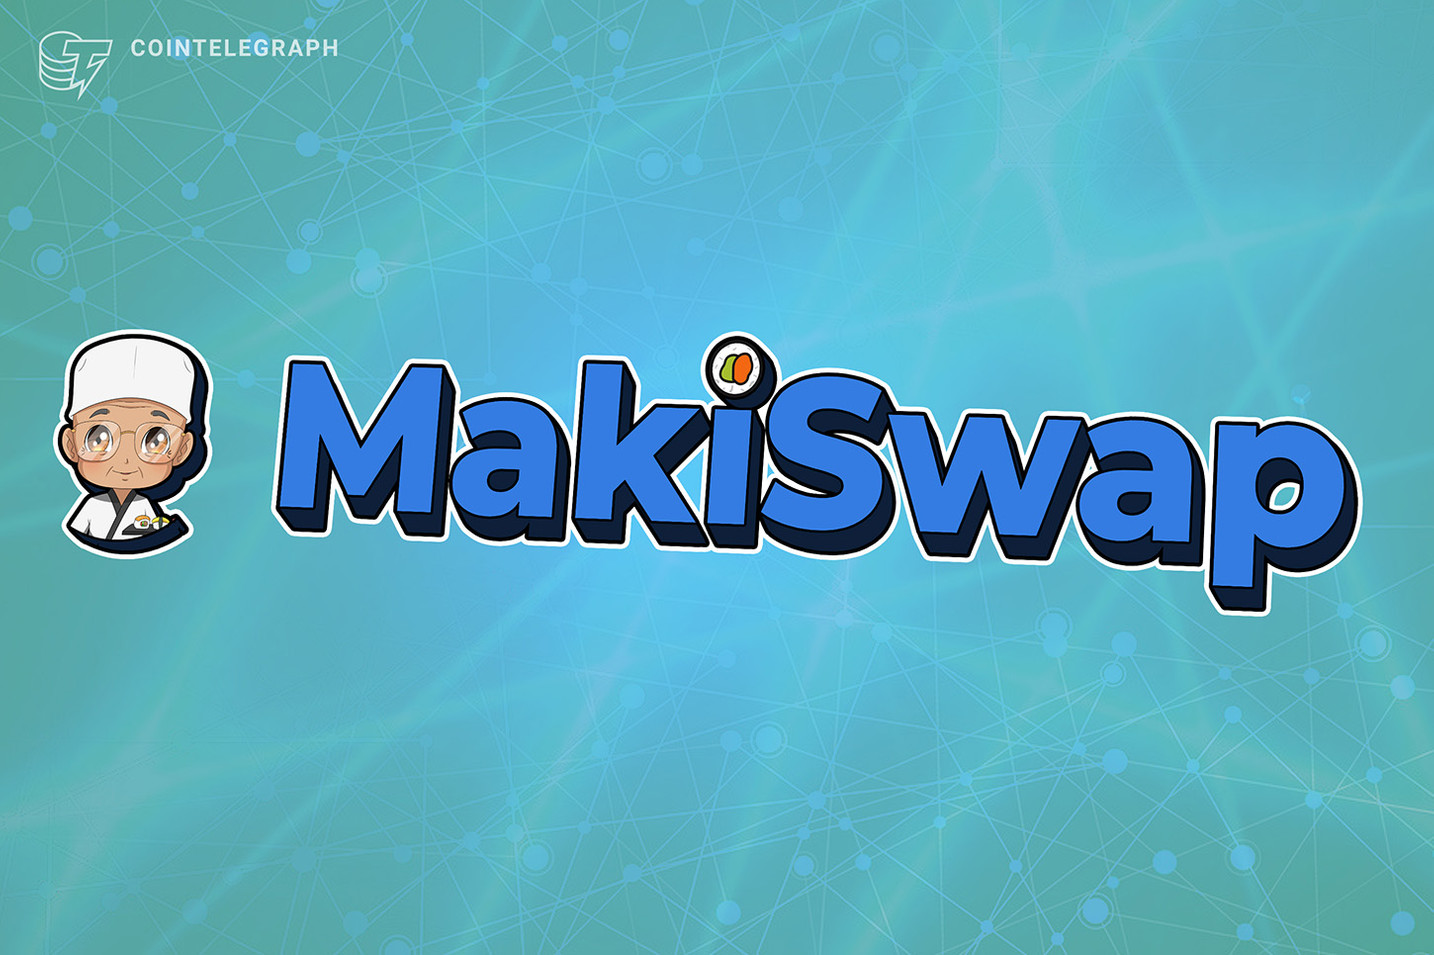 MakiSwap integrates Chainlink VRF on Polygon in its lucky draw game